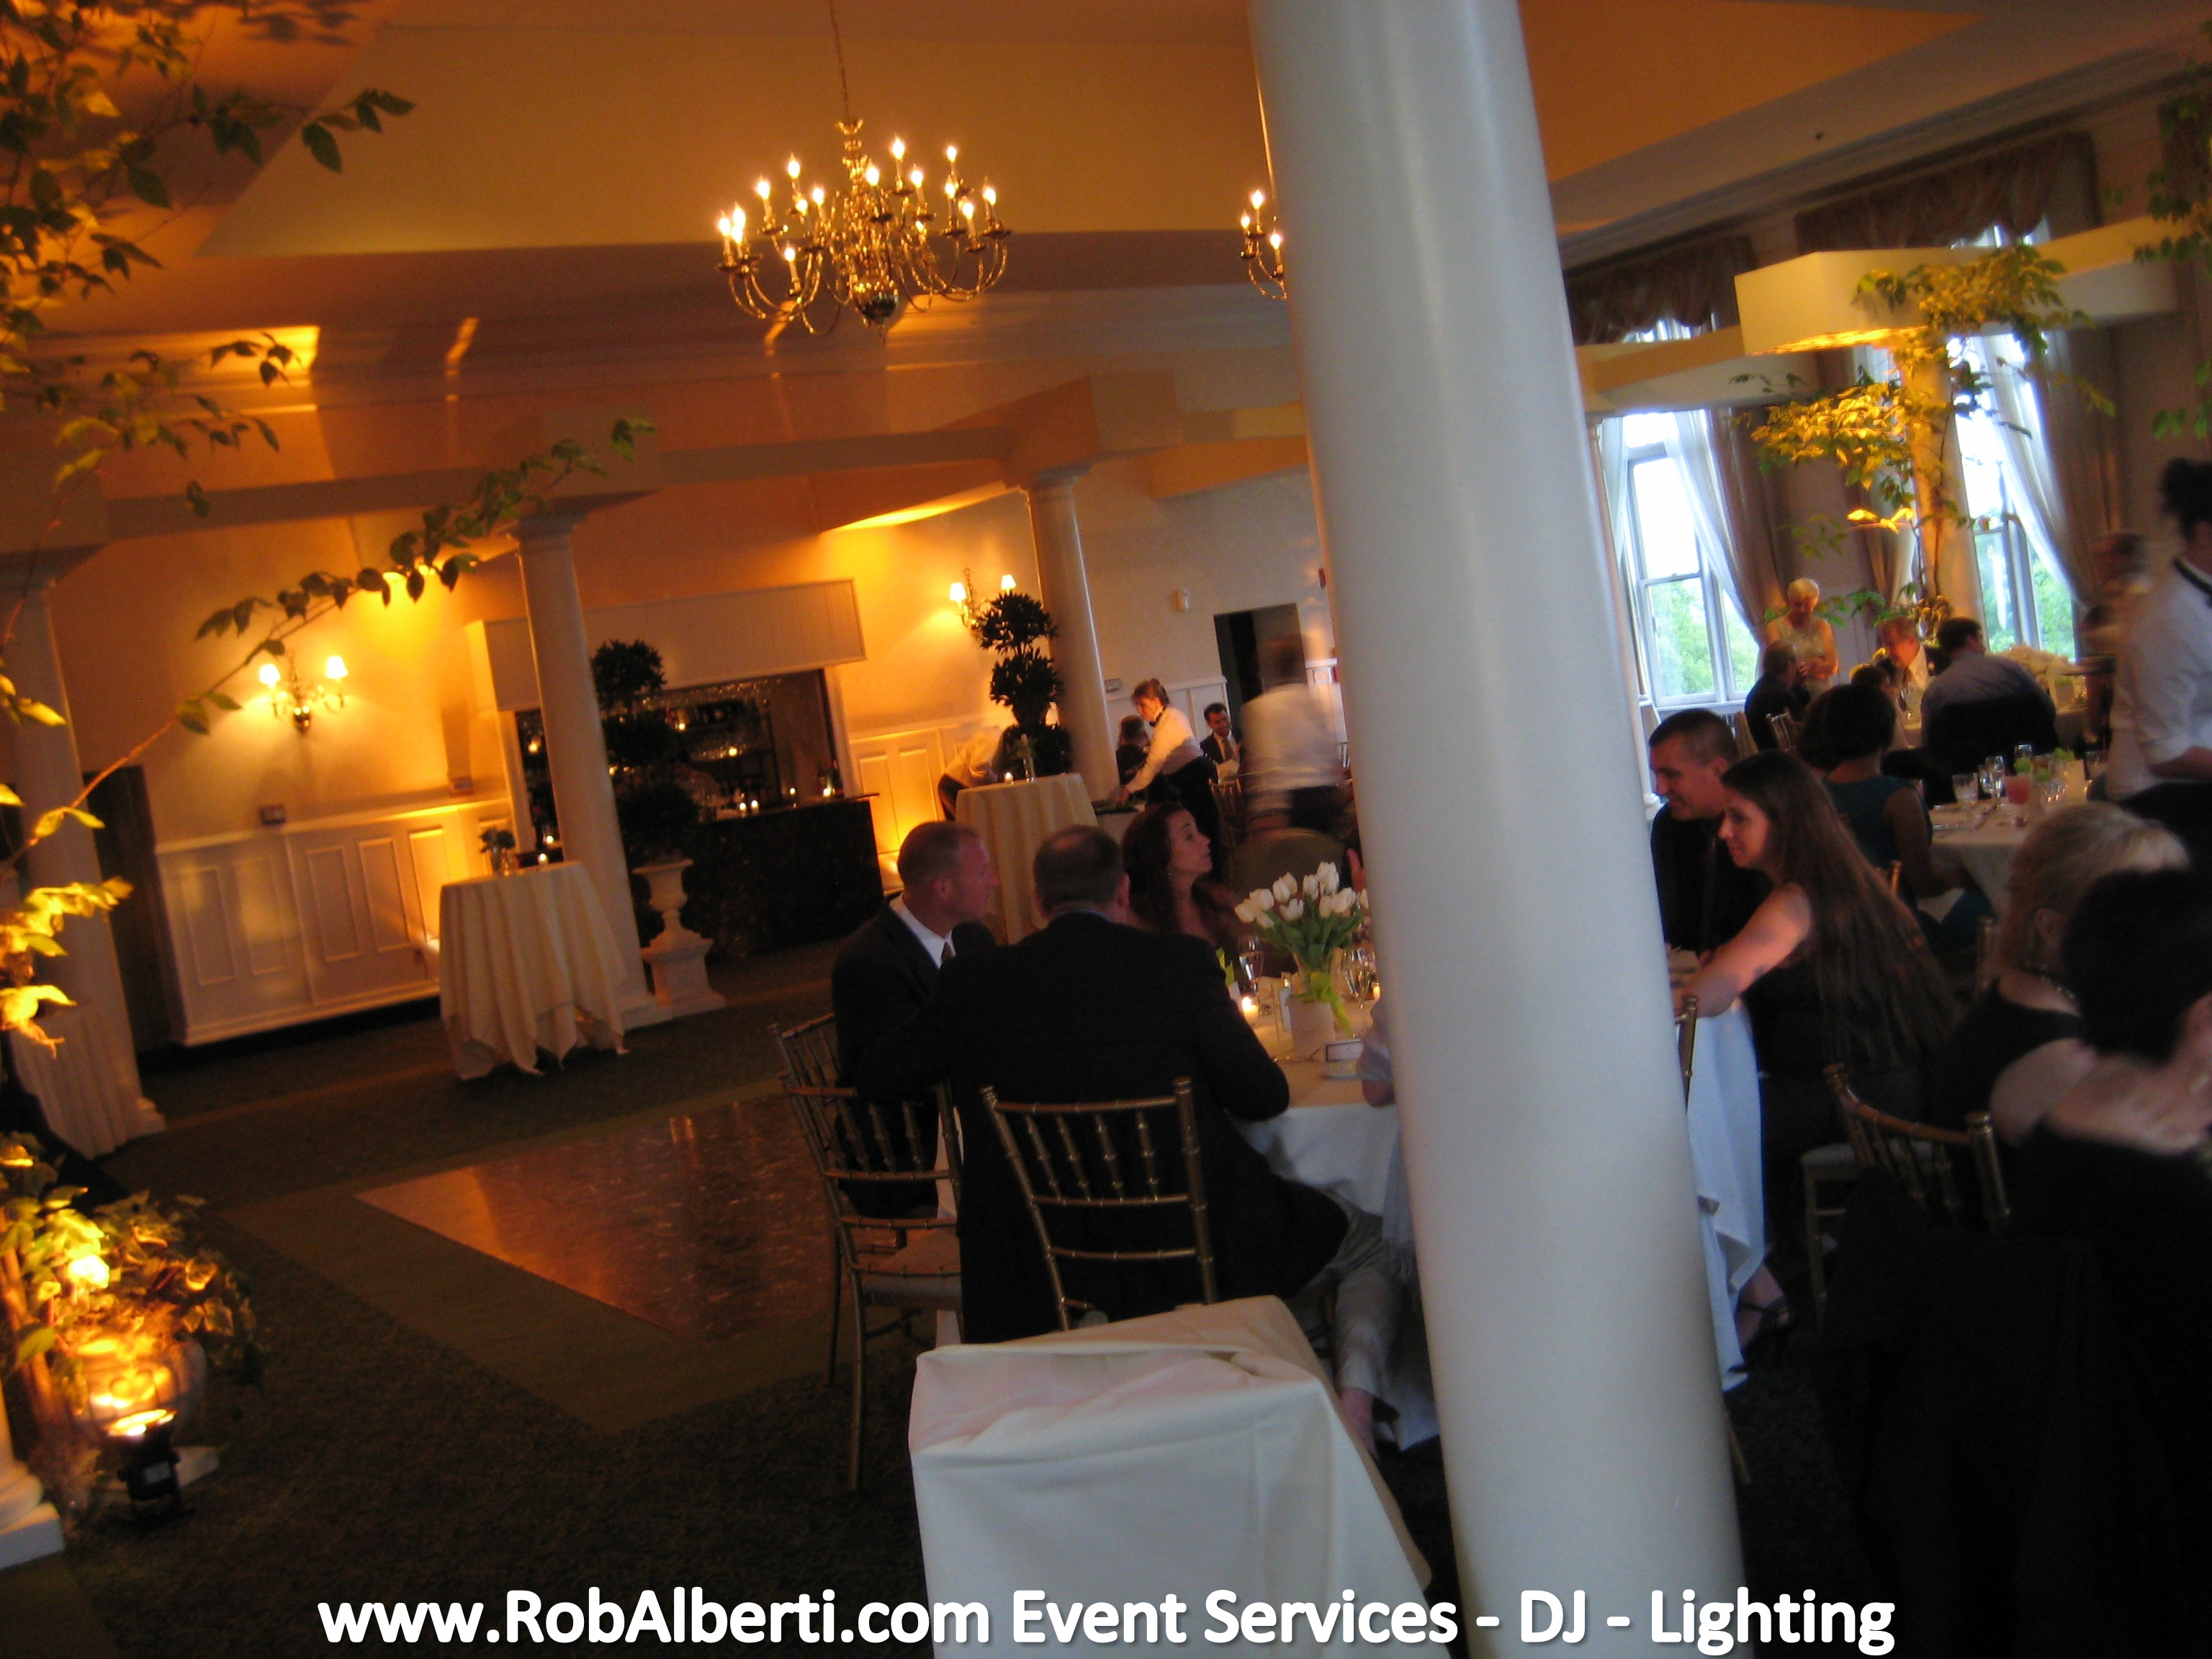 Lighting Your Wedding Reception | Rob Alberti's Event Services - 413 on outdoor space lighting ideas, dance floor lighting ideas, solar lighting ideas, street lighting ideas, banquet lighting ideas, country lighting ideas, study lighting ideas, diy lighting ideas, clubhouse lighting ideas, gym lighting ideas, theater lighting ideas, spa lighting ideas, man cave lighting ideas, room lighting ideas, studio lighting ideas, modern lighting ideas, rock lighting ideas, alcove lighting ideas, hall lighting ideas, terrace lighting ideas,